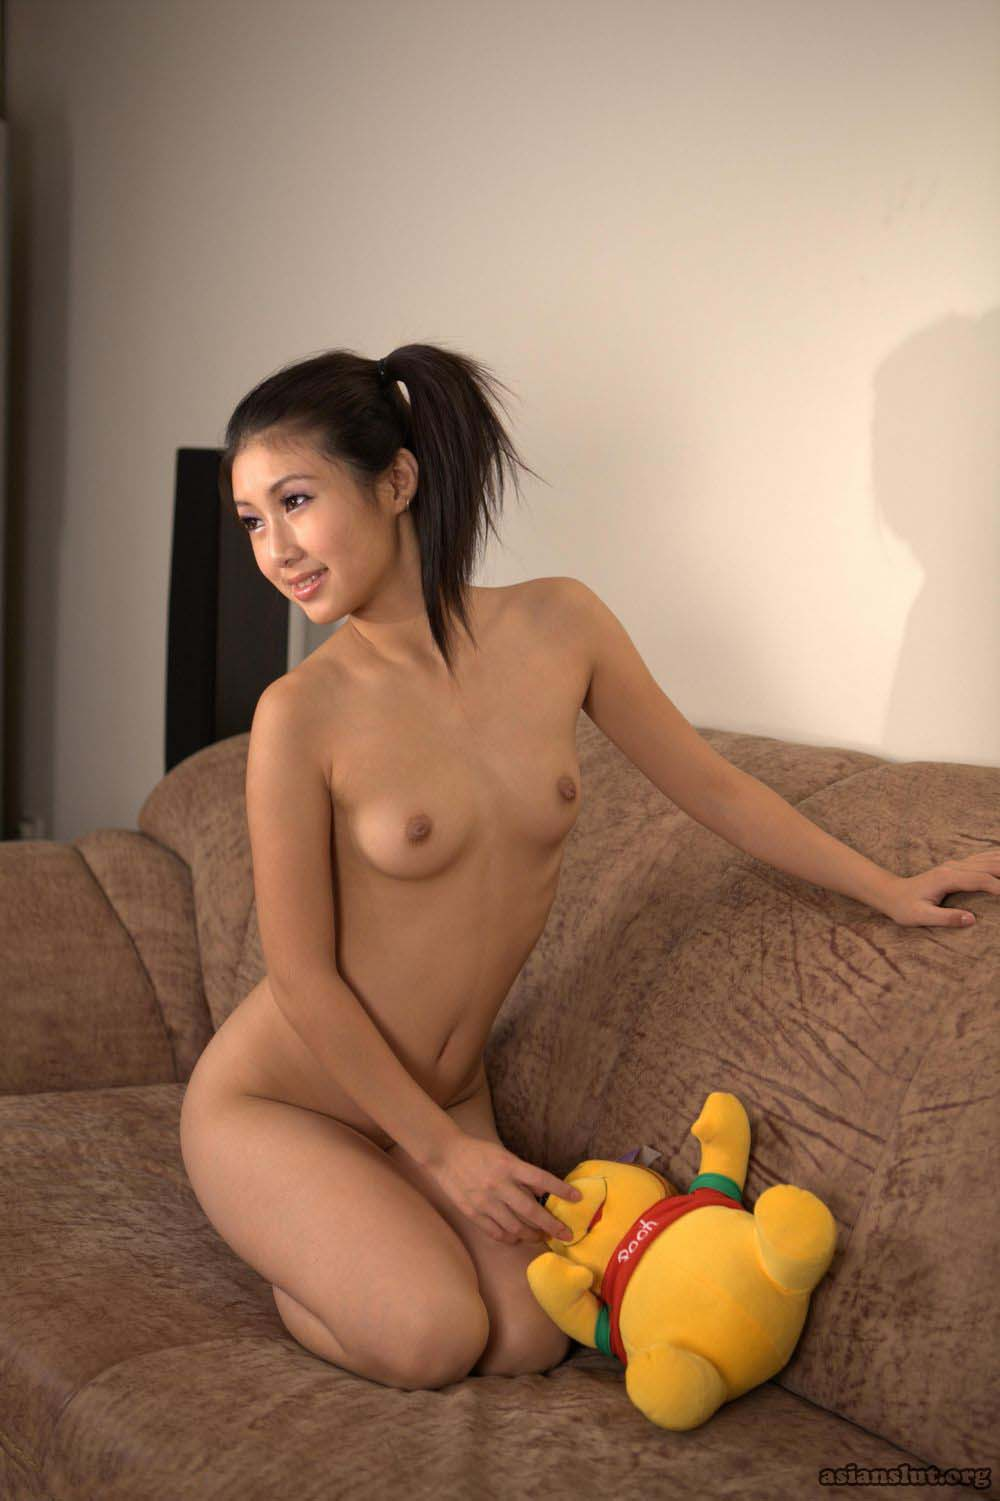 cute Amateur Asian Model Shows Off Her Petite Body